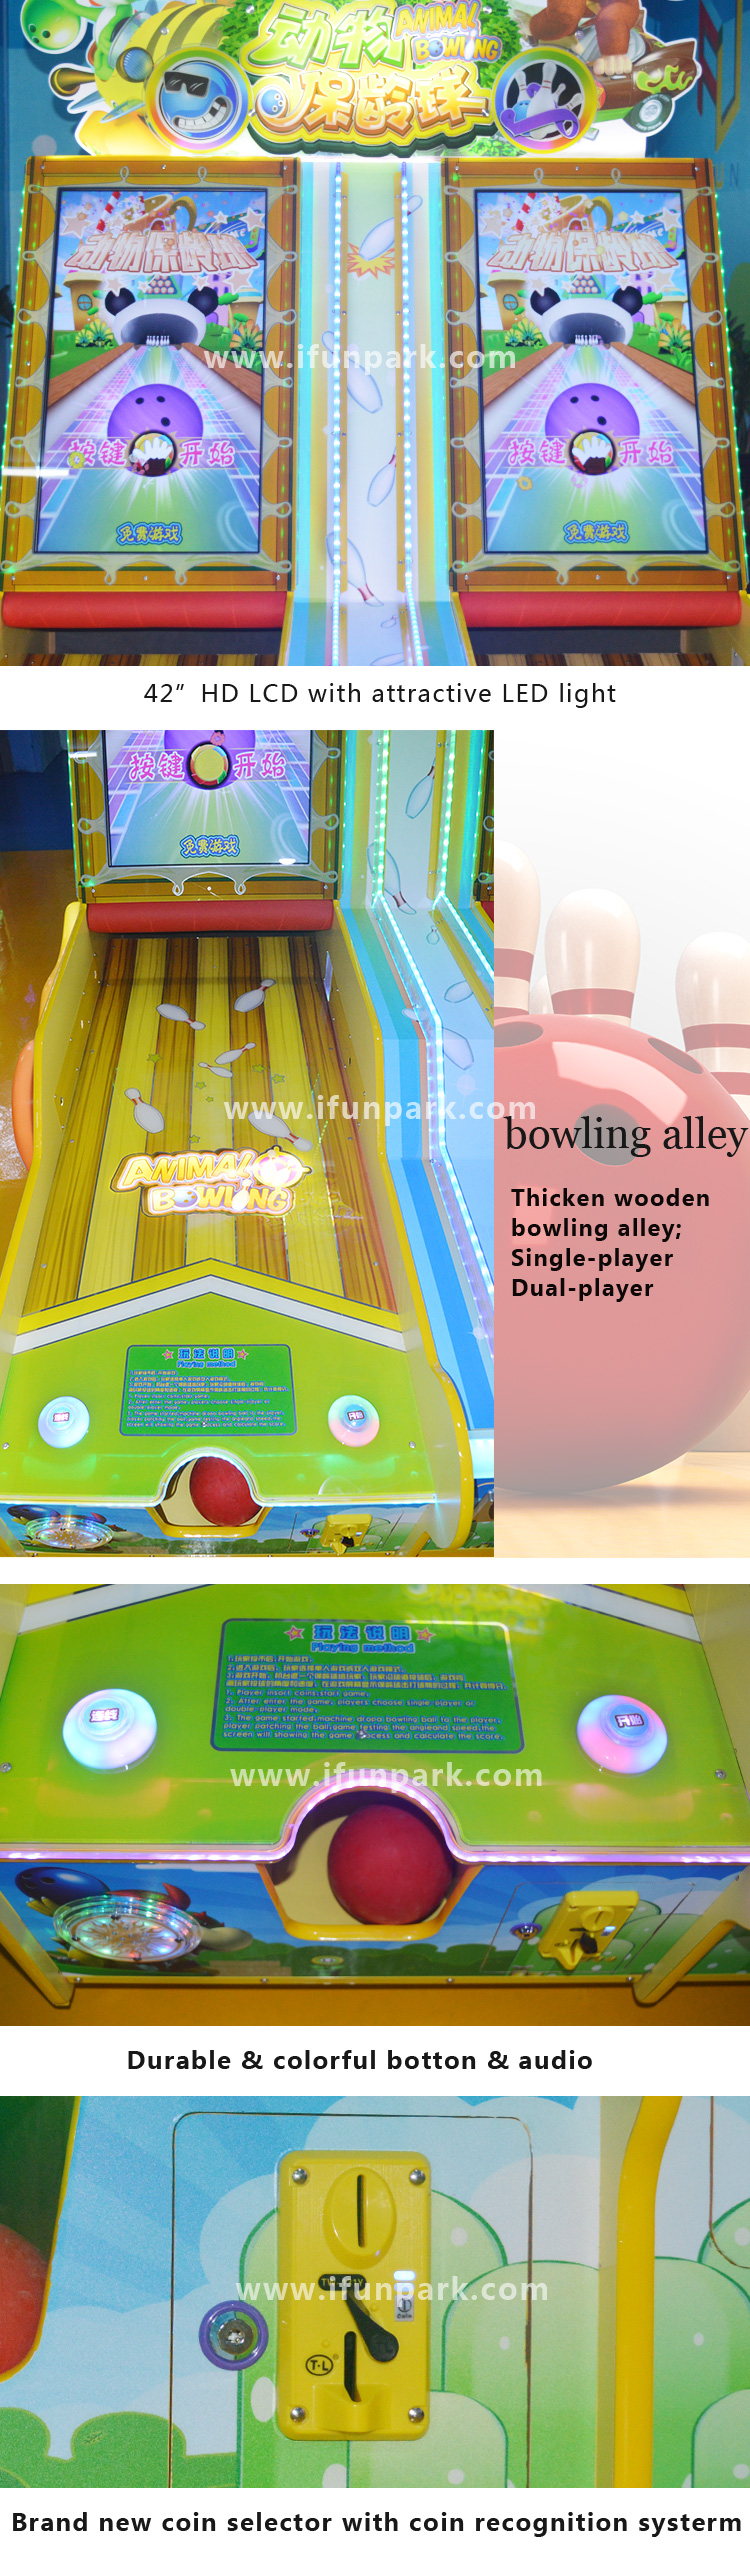 Game Center 32inch HD LCD cricket bowling ticket redemption game machine for sale